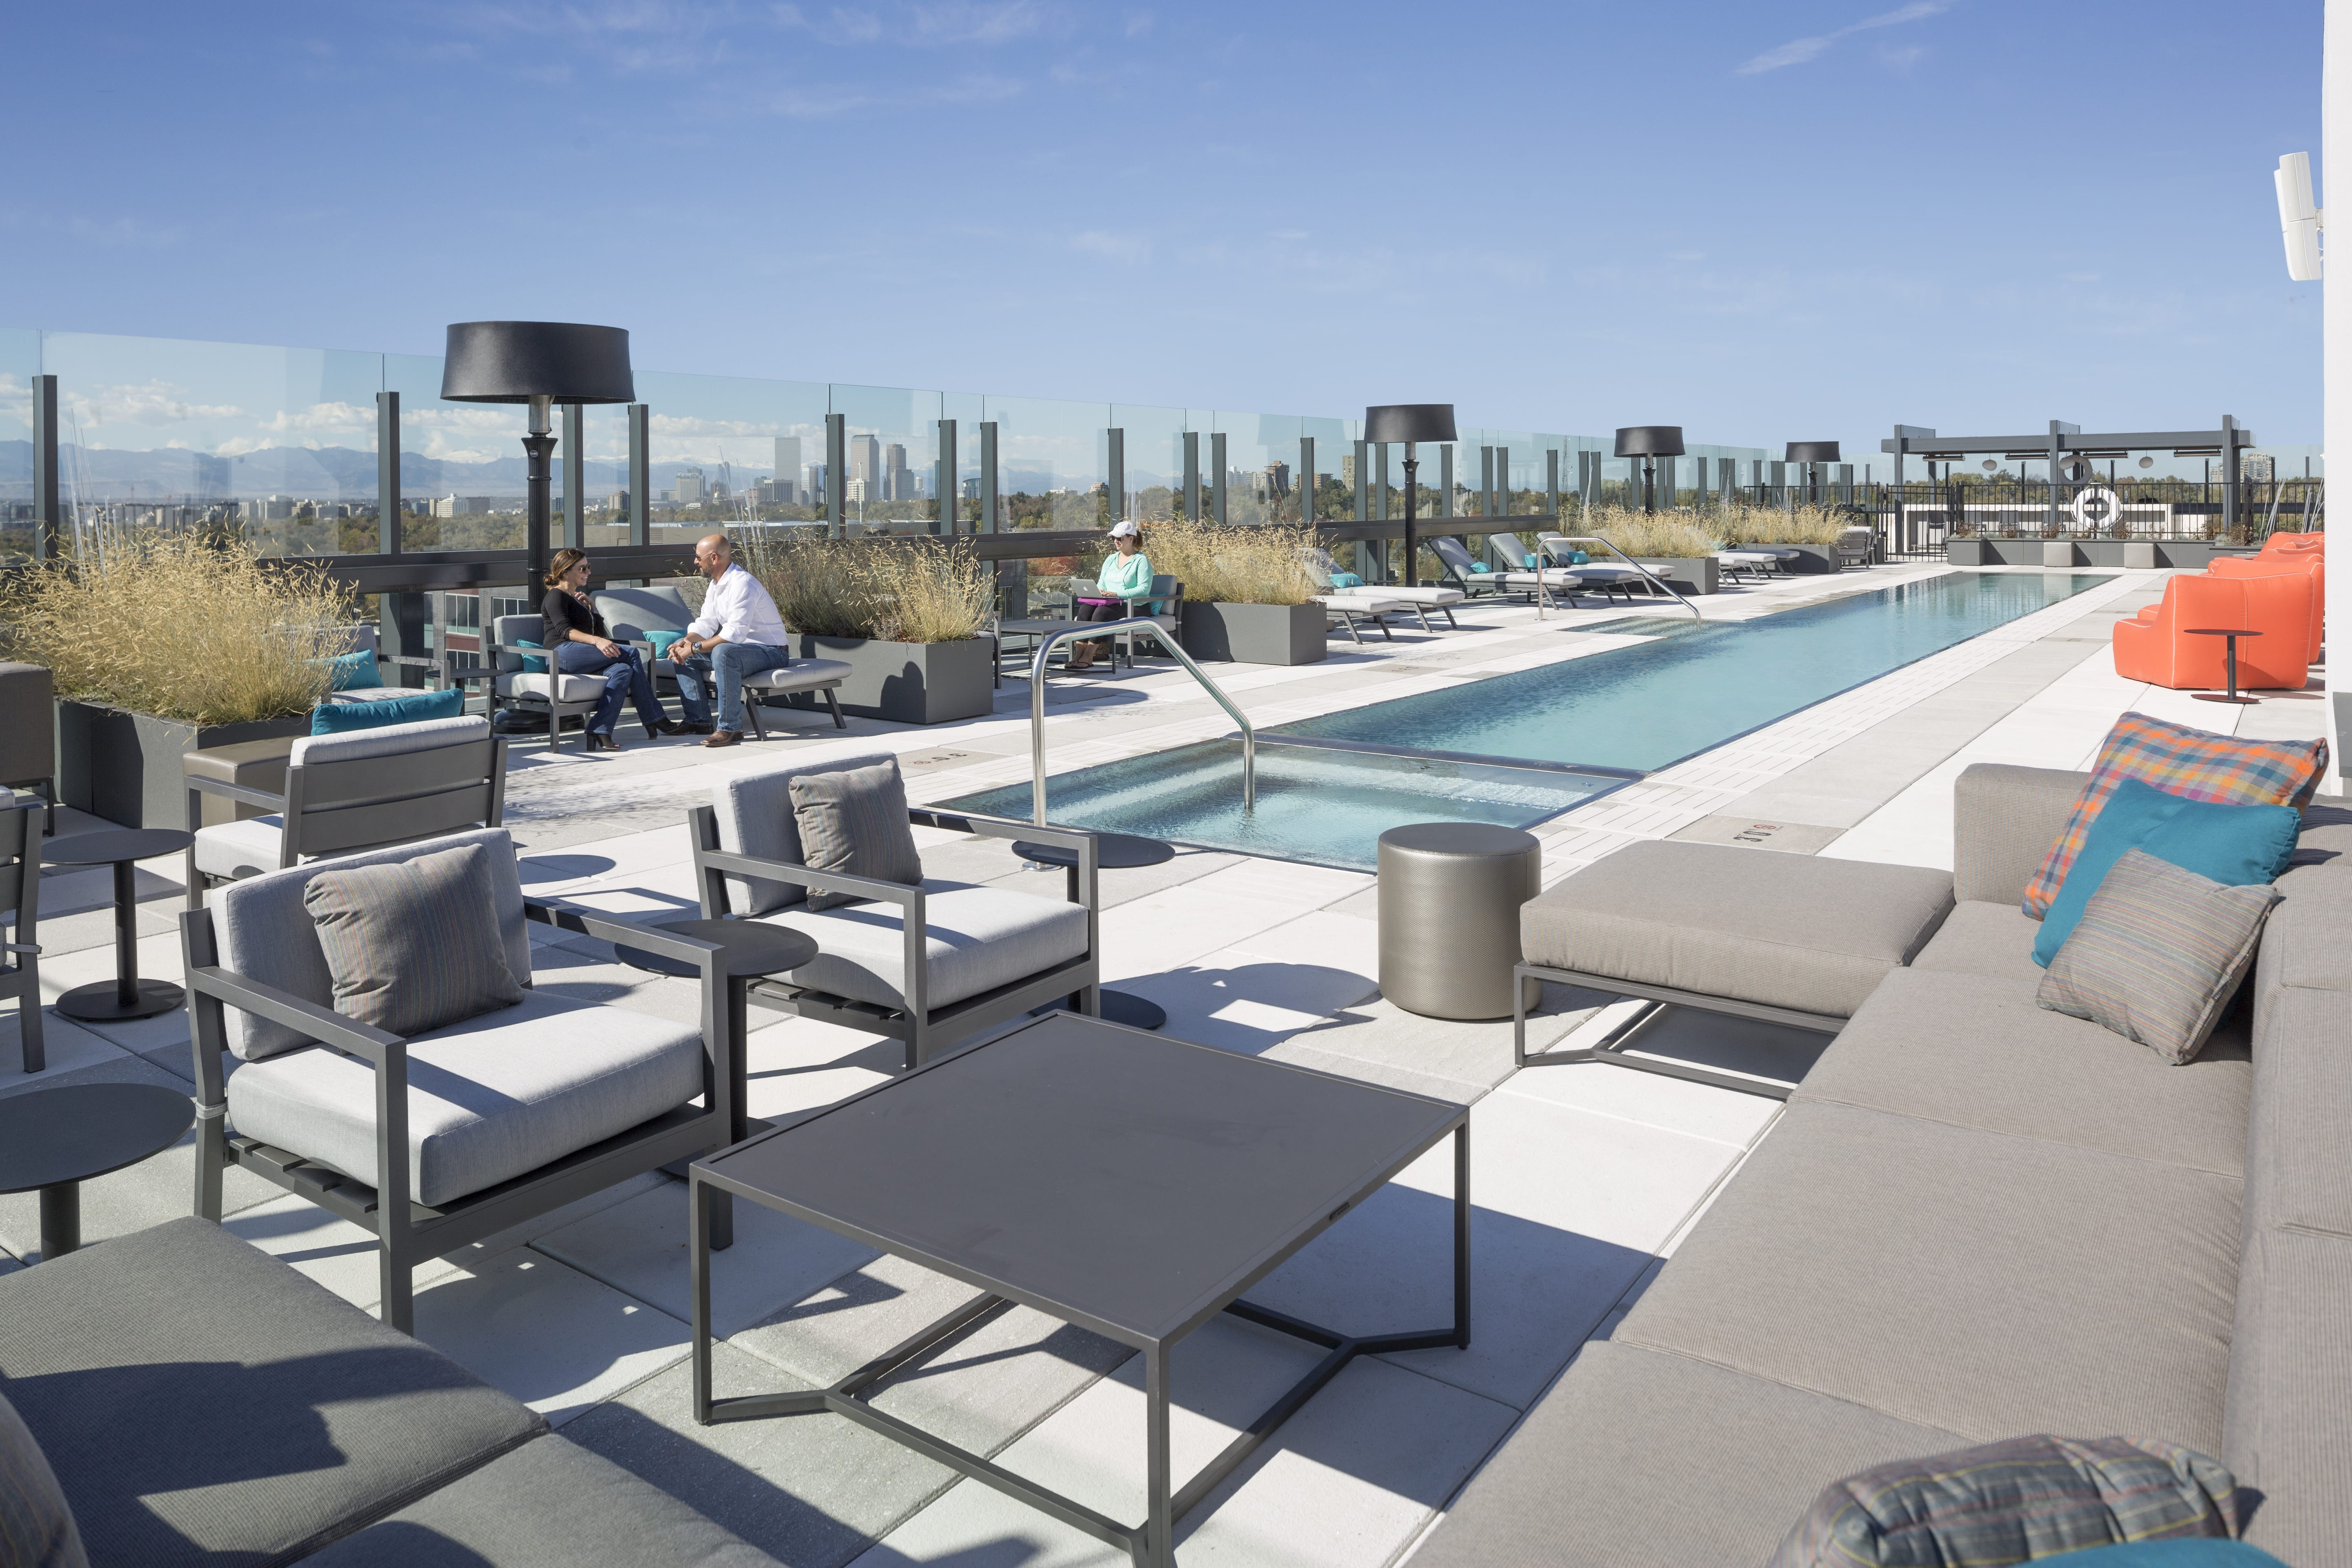 Jacquard Hotel Rooftop Cannondesign